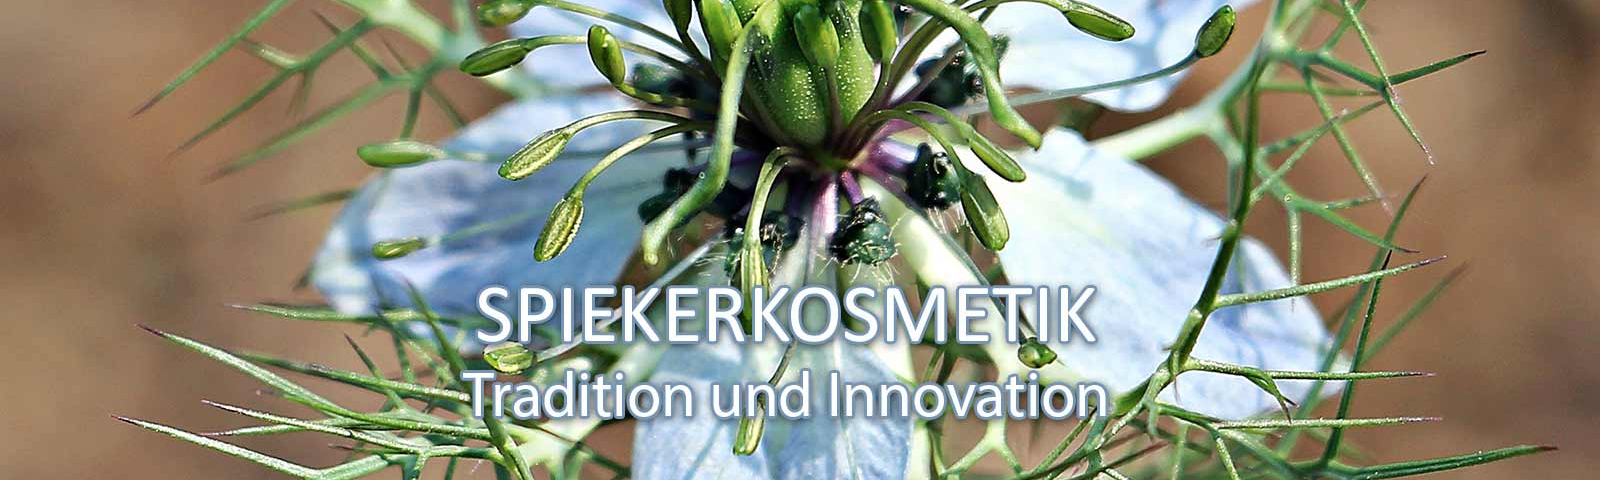 SPIEKERKOSMETIK Tradition und Innovation